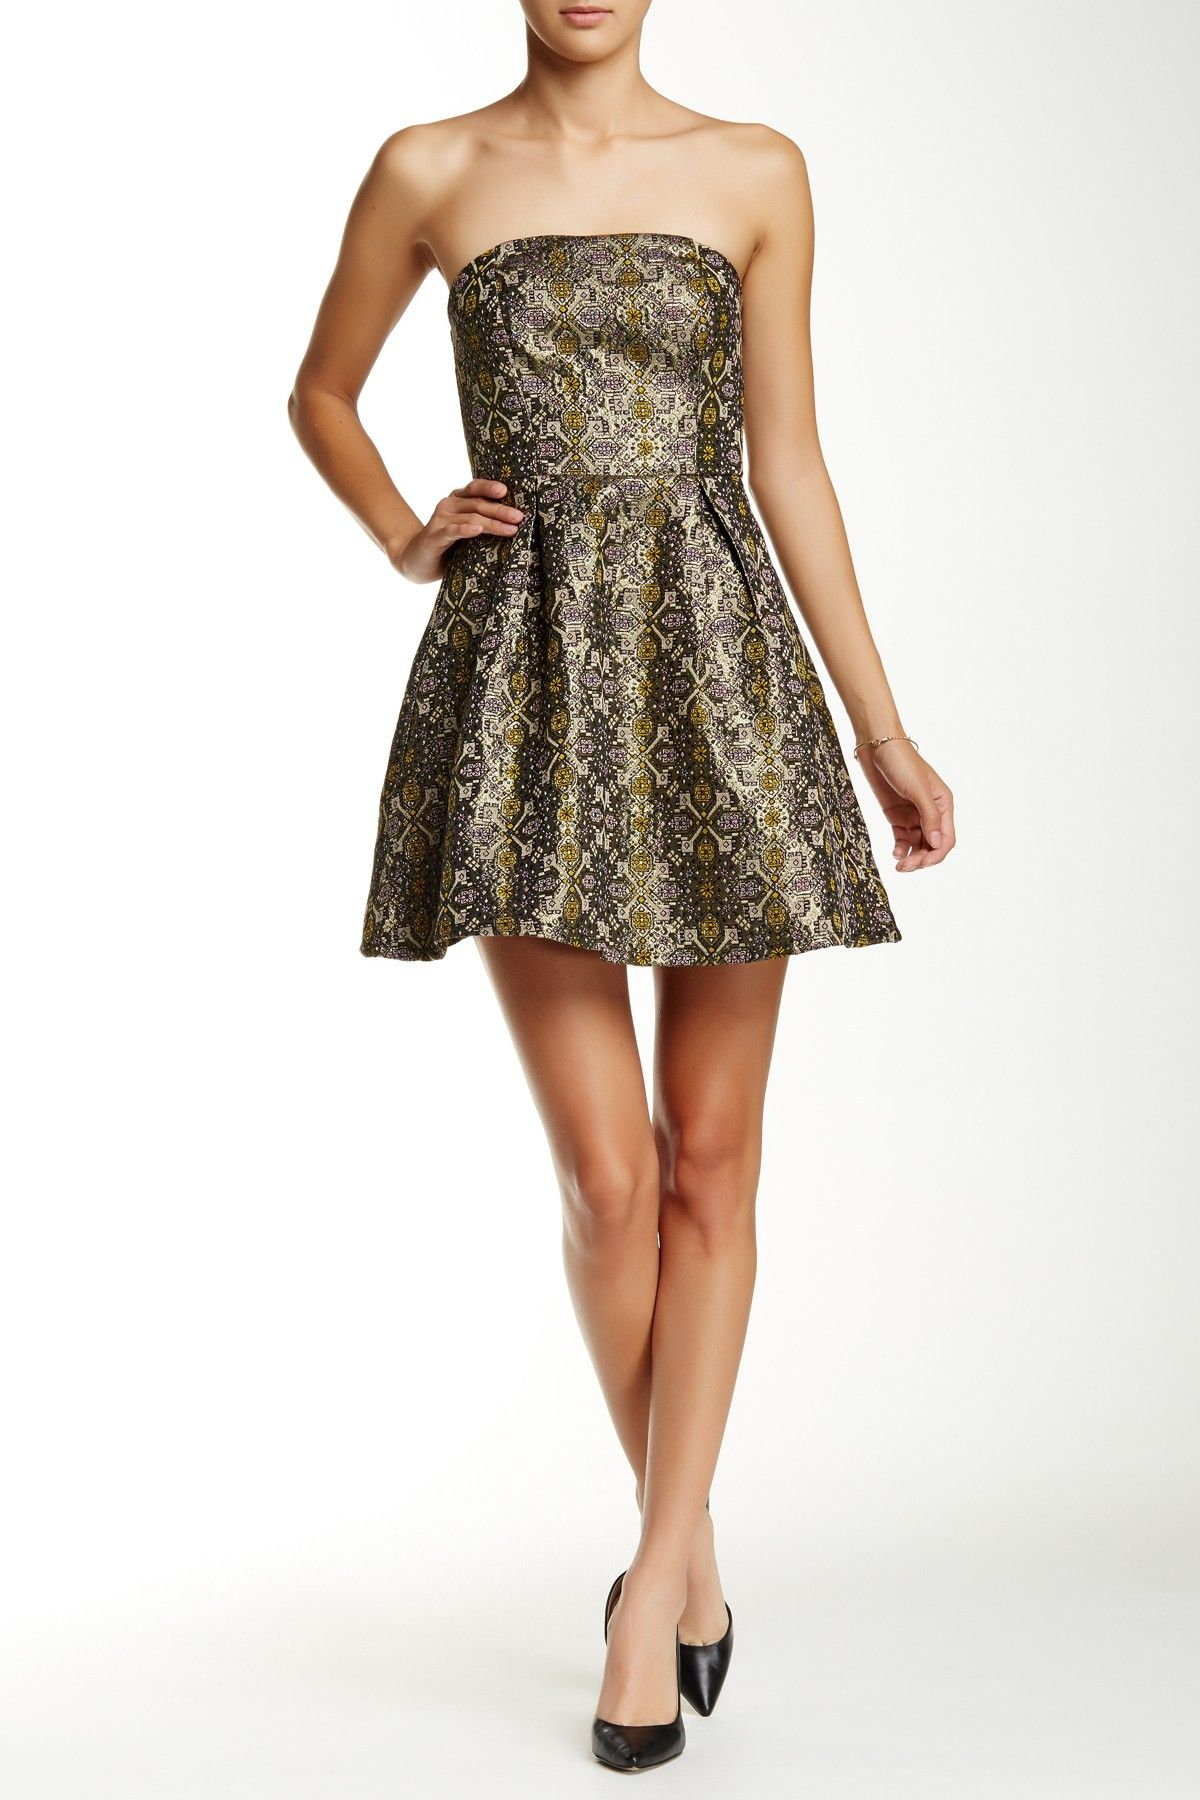 Strapless Baroque Dress | Baroque dress, Semi dresses and Nordstrom